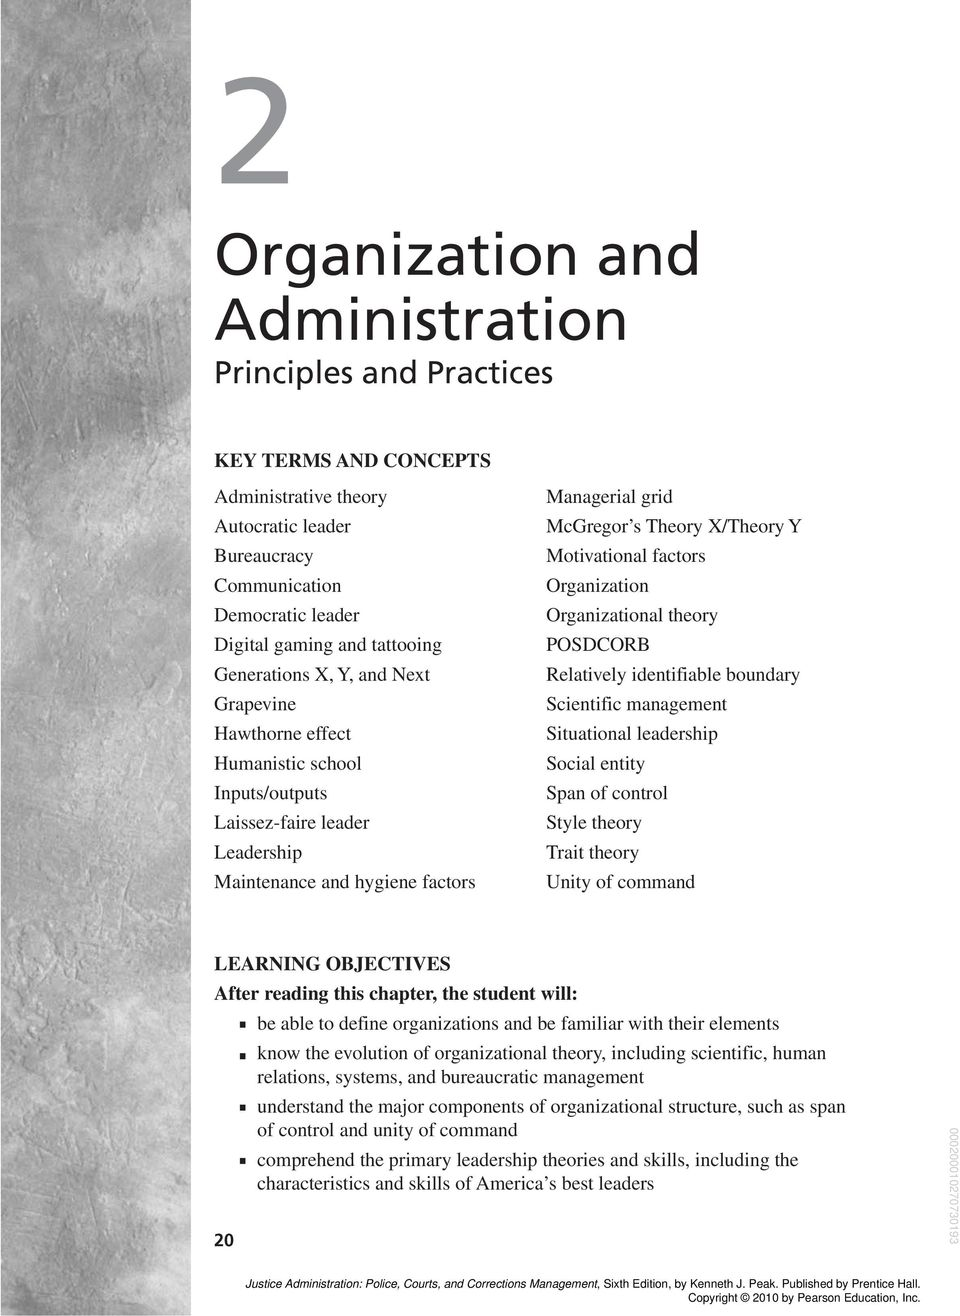 theory of bureaucracy in management